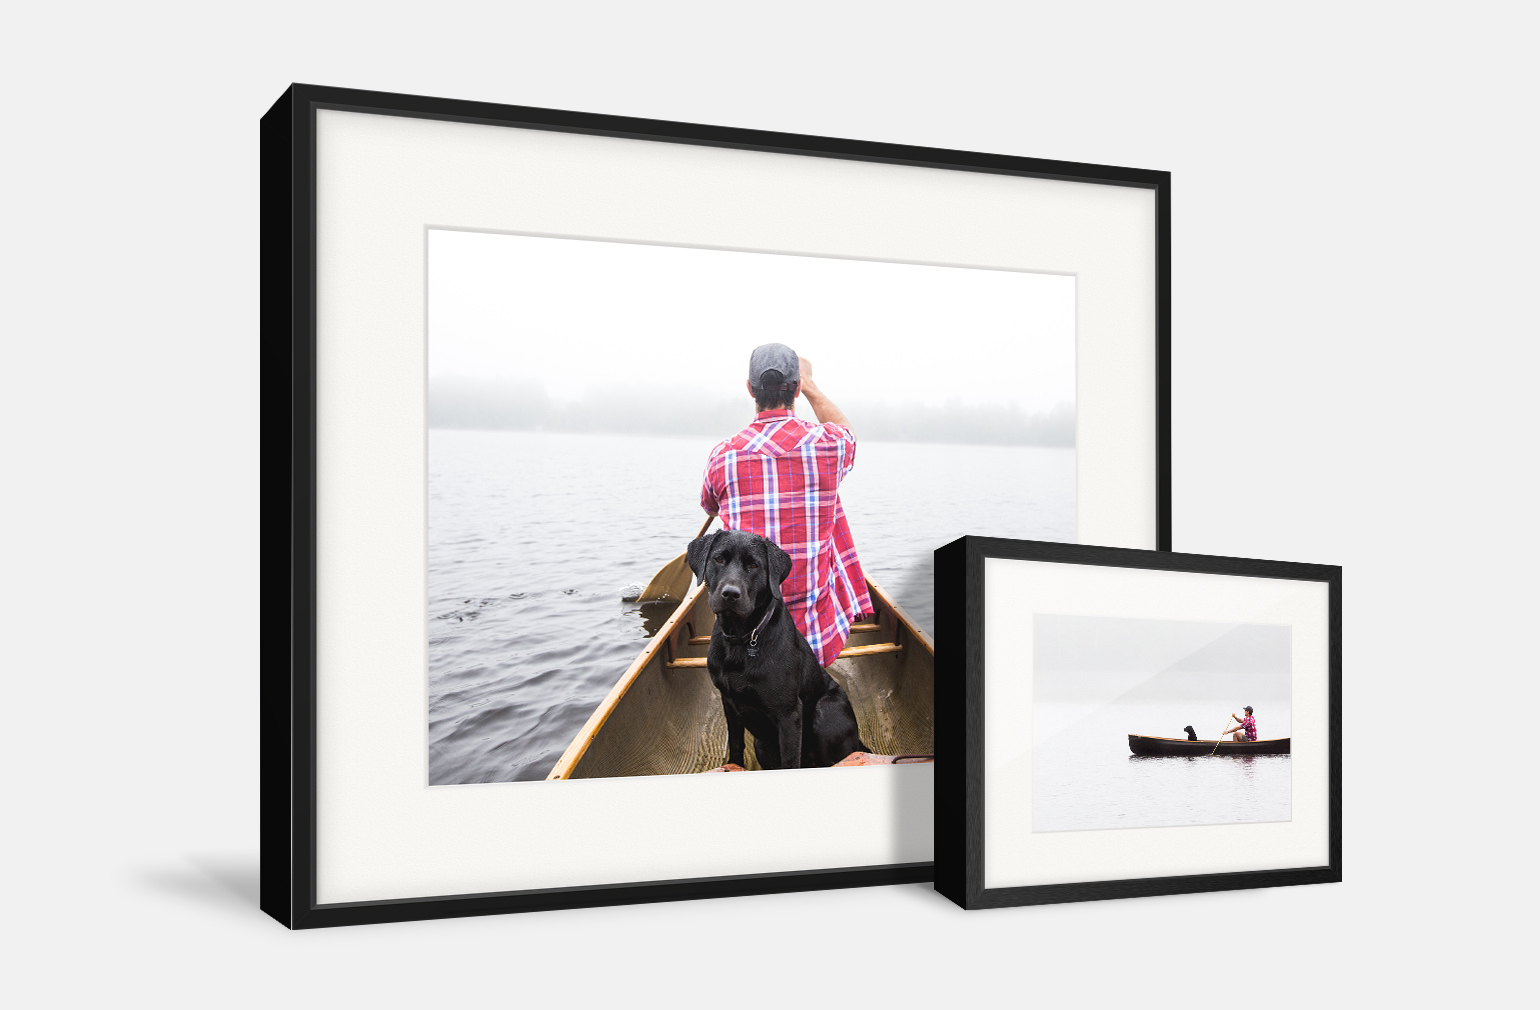 Two gallery frames side by side of a man and his dog on a canoe.